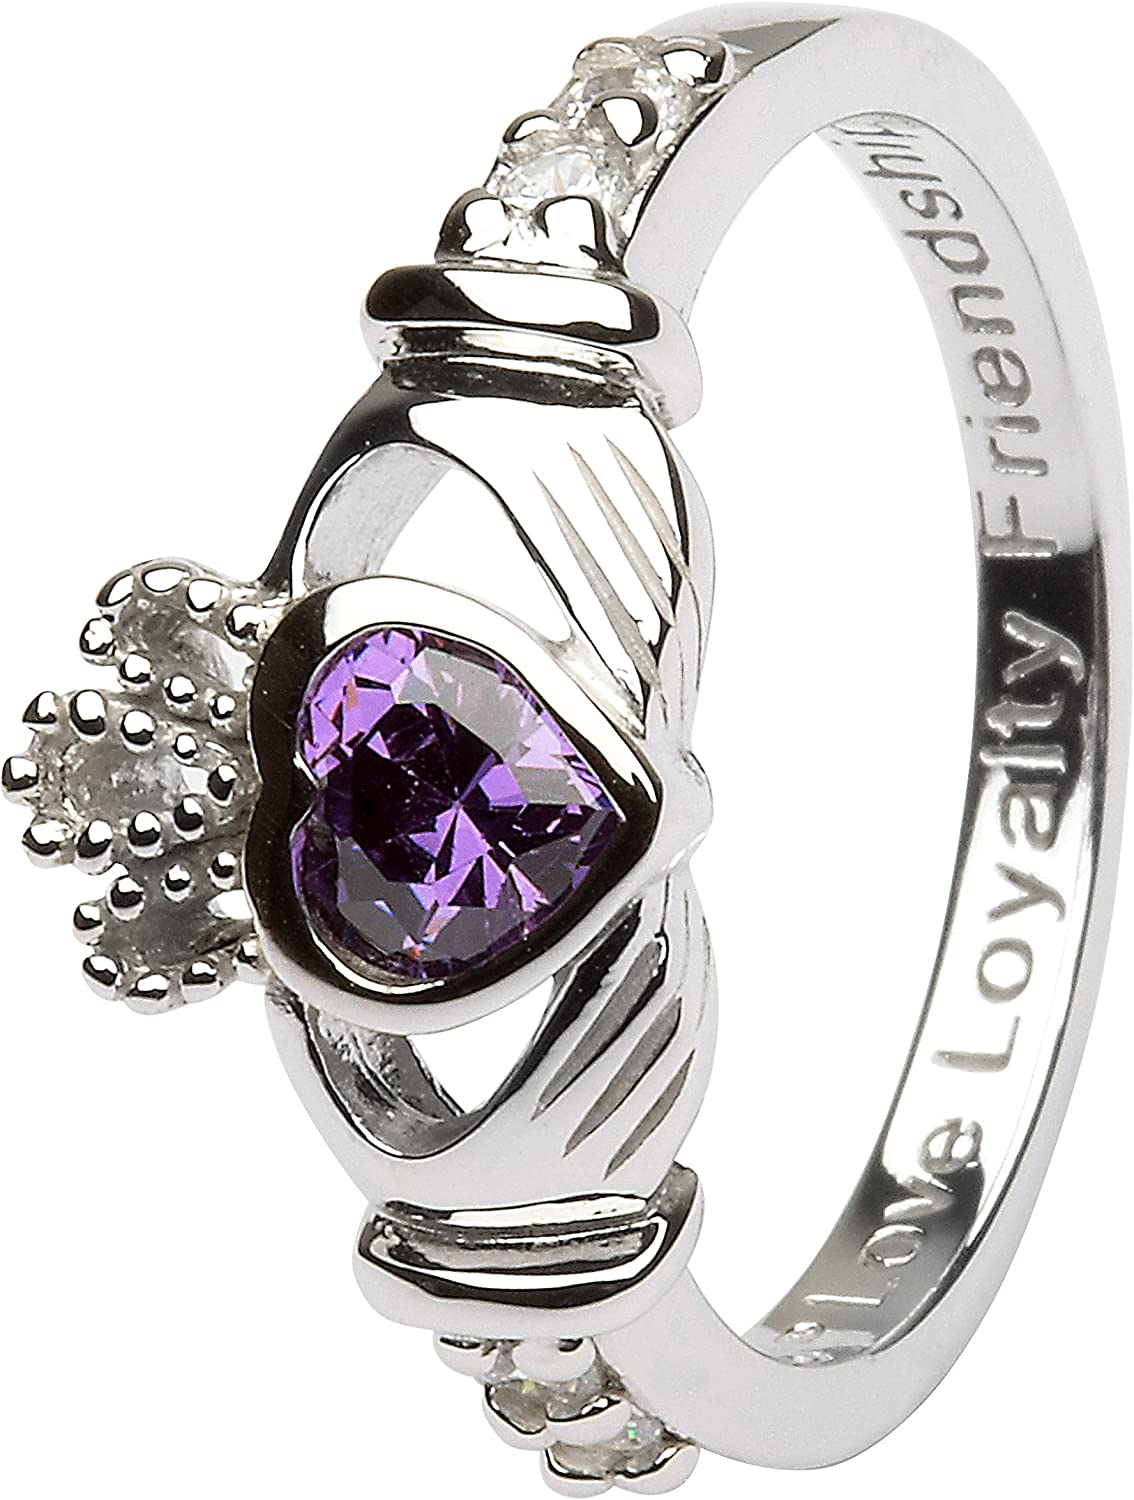 February Max 70% OFF Large special price Birth Month Sterling Silver Ring Claddagh LS-SL90-2. Ma